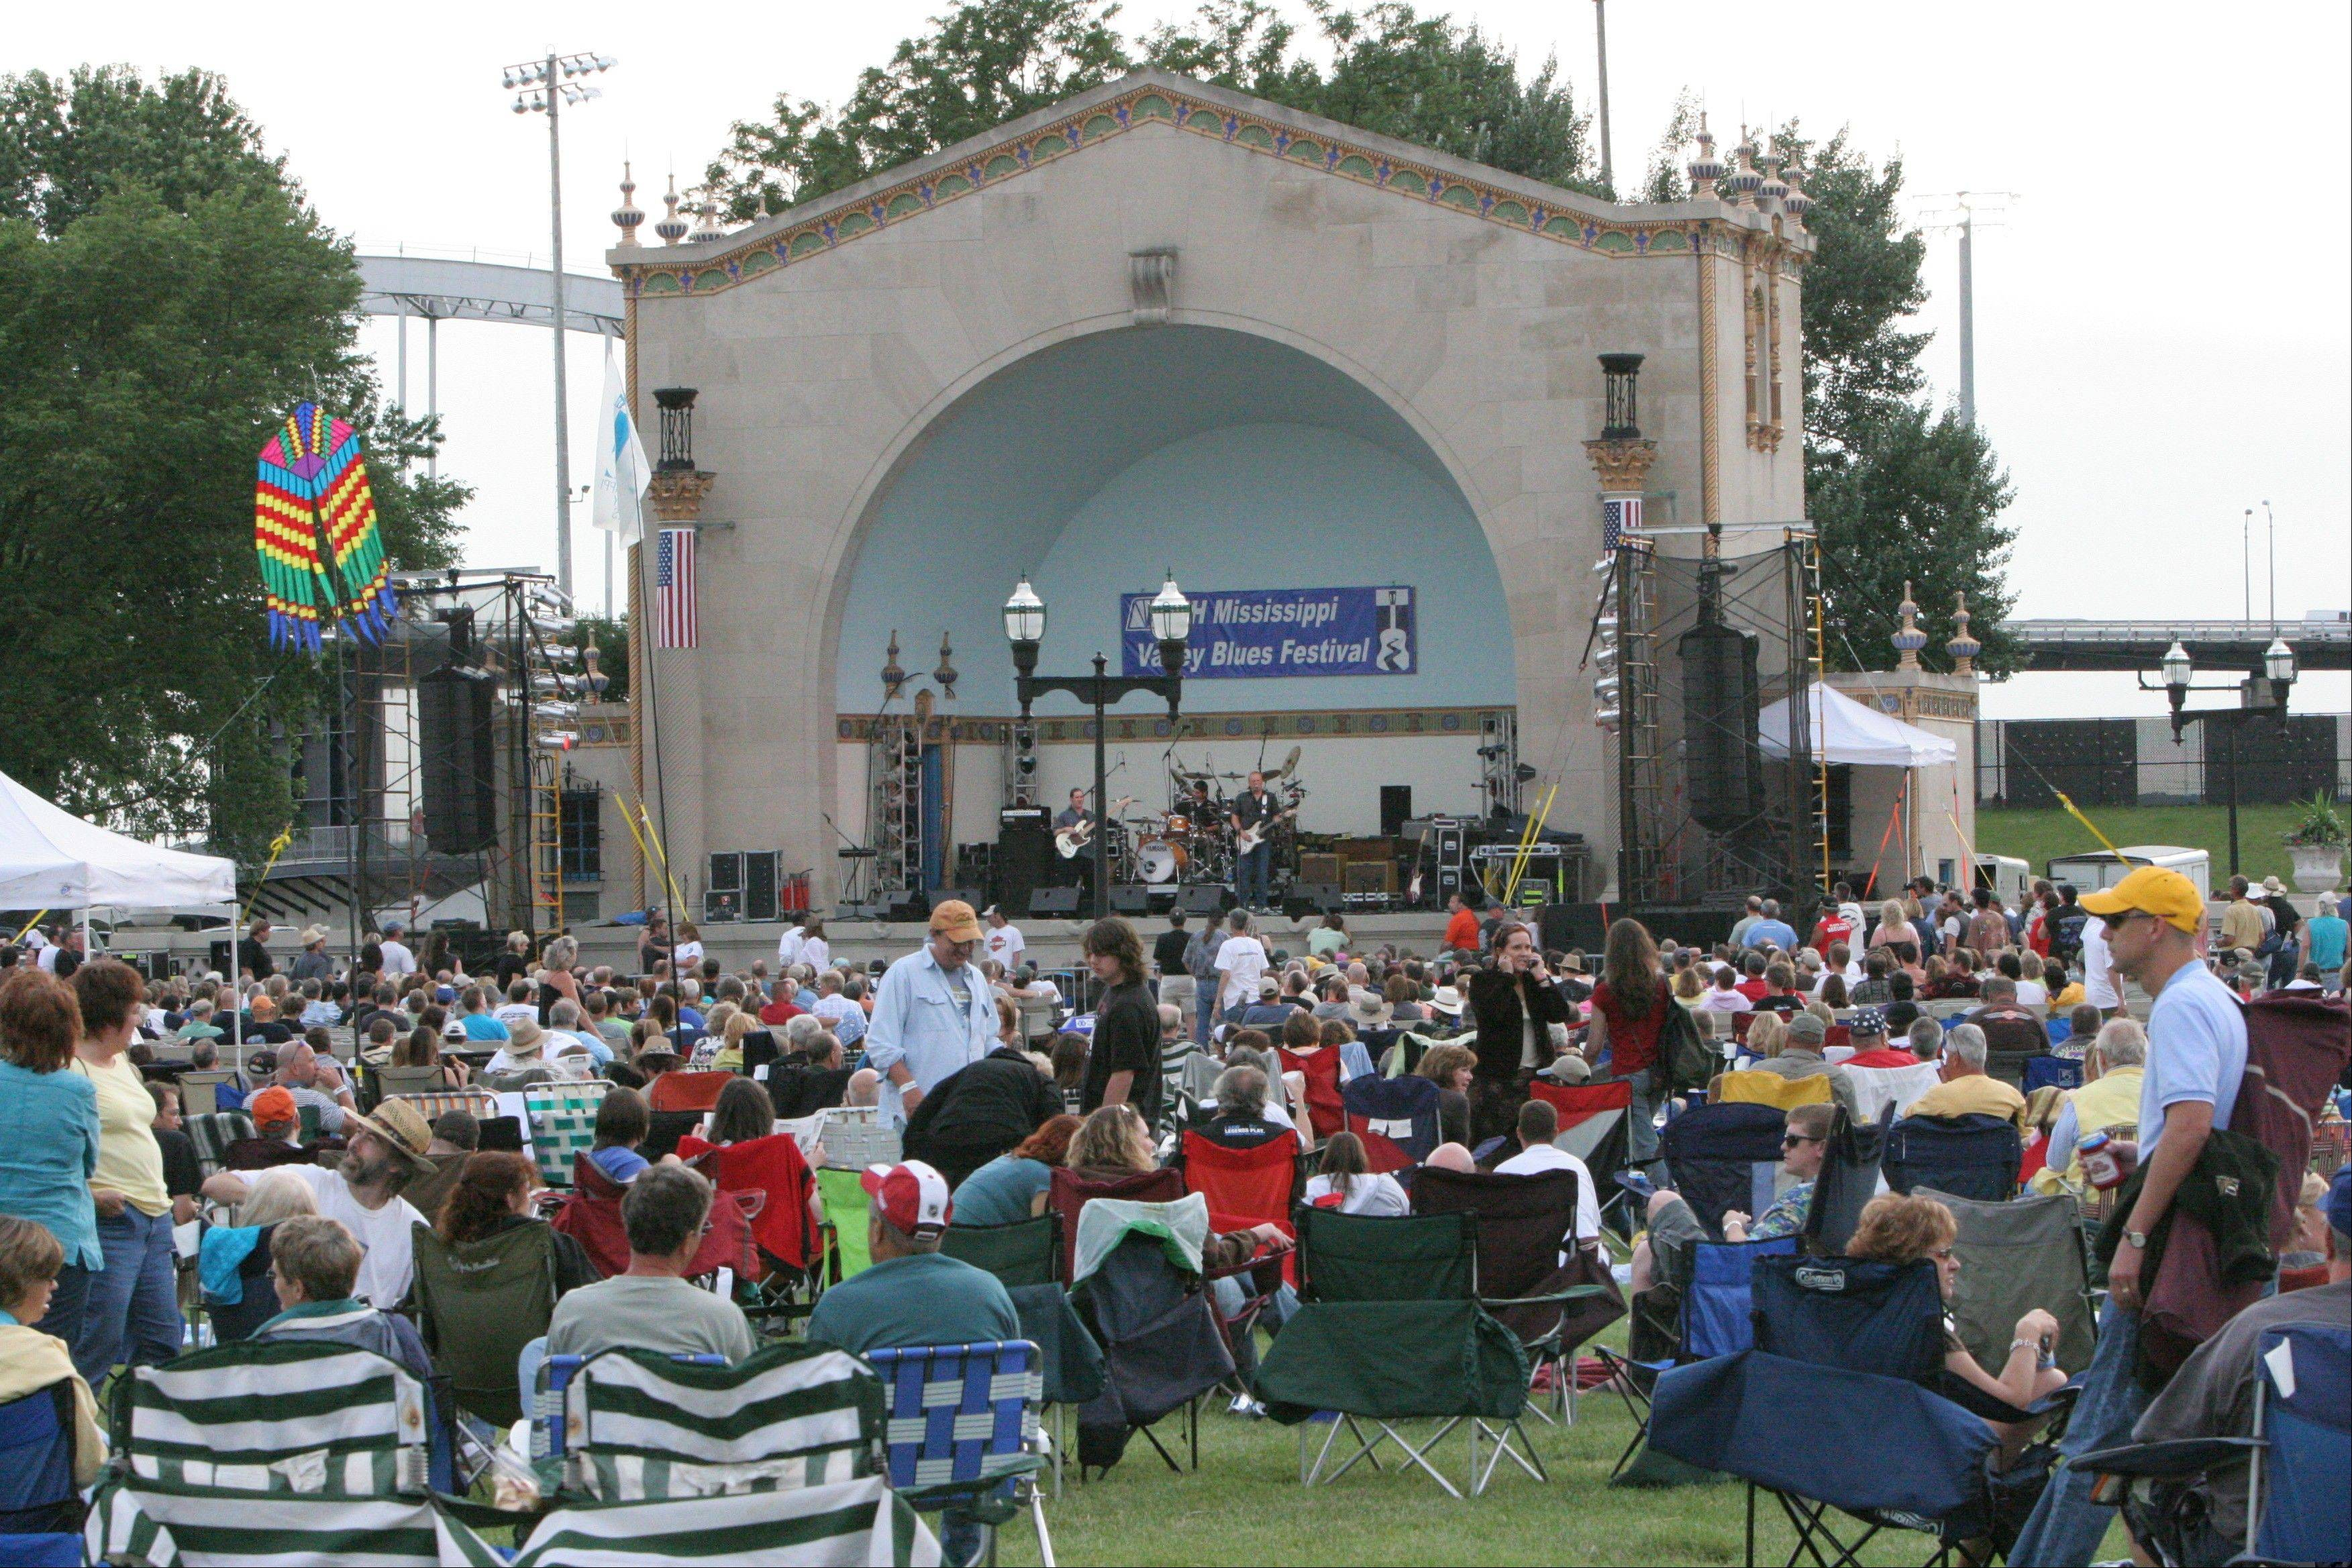 The Mississippi Valley Blues Festival celebrates its 29th year on Fourth of July weekend with an all-star lineup.